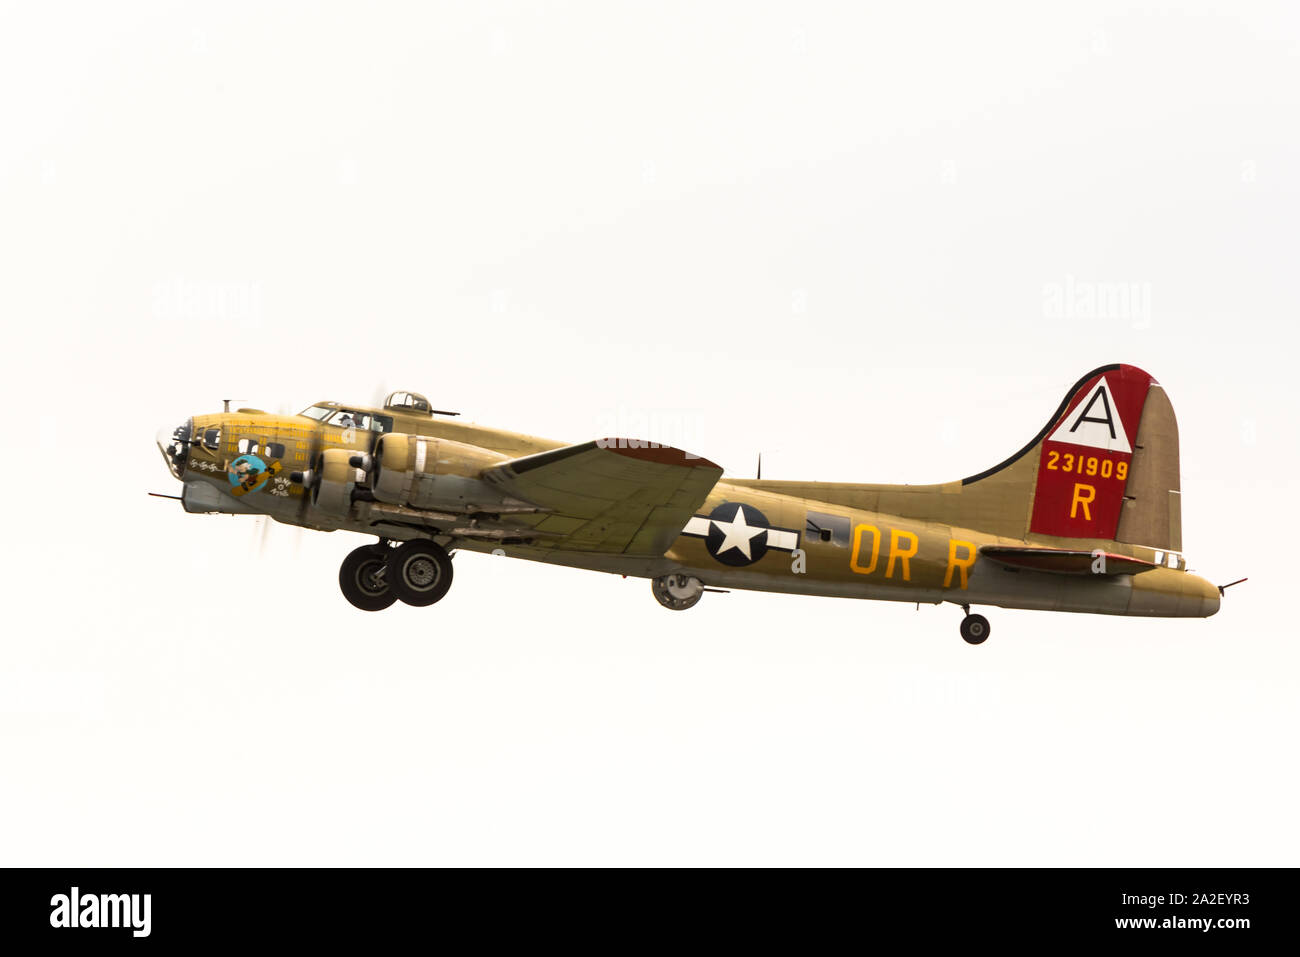 Collings Foundation's B-17G Flying Fortress, Nine-O-Nine, at Worcester Regional Airport for Wings of Freedom event. Stock Photo